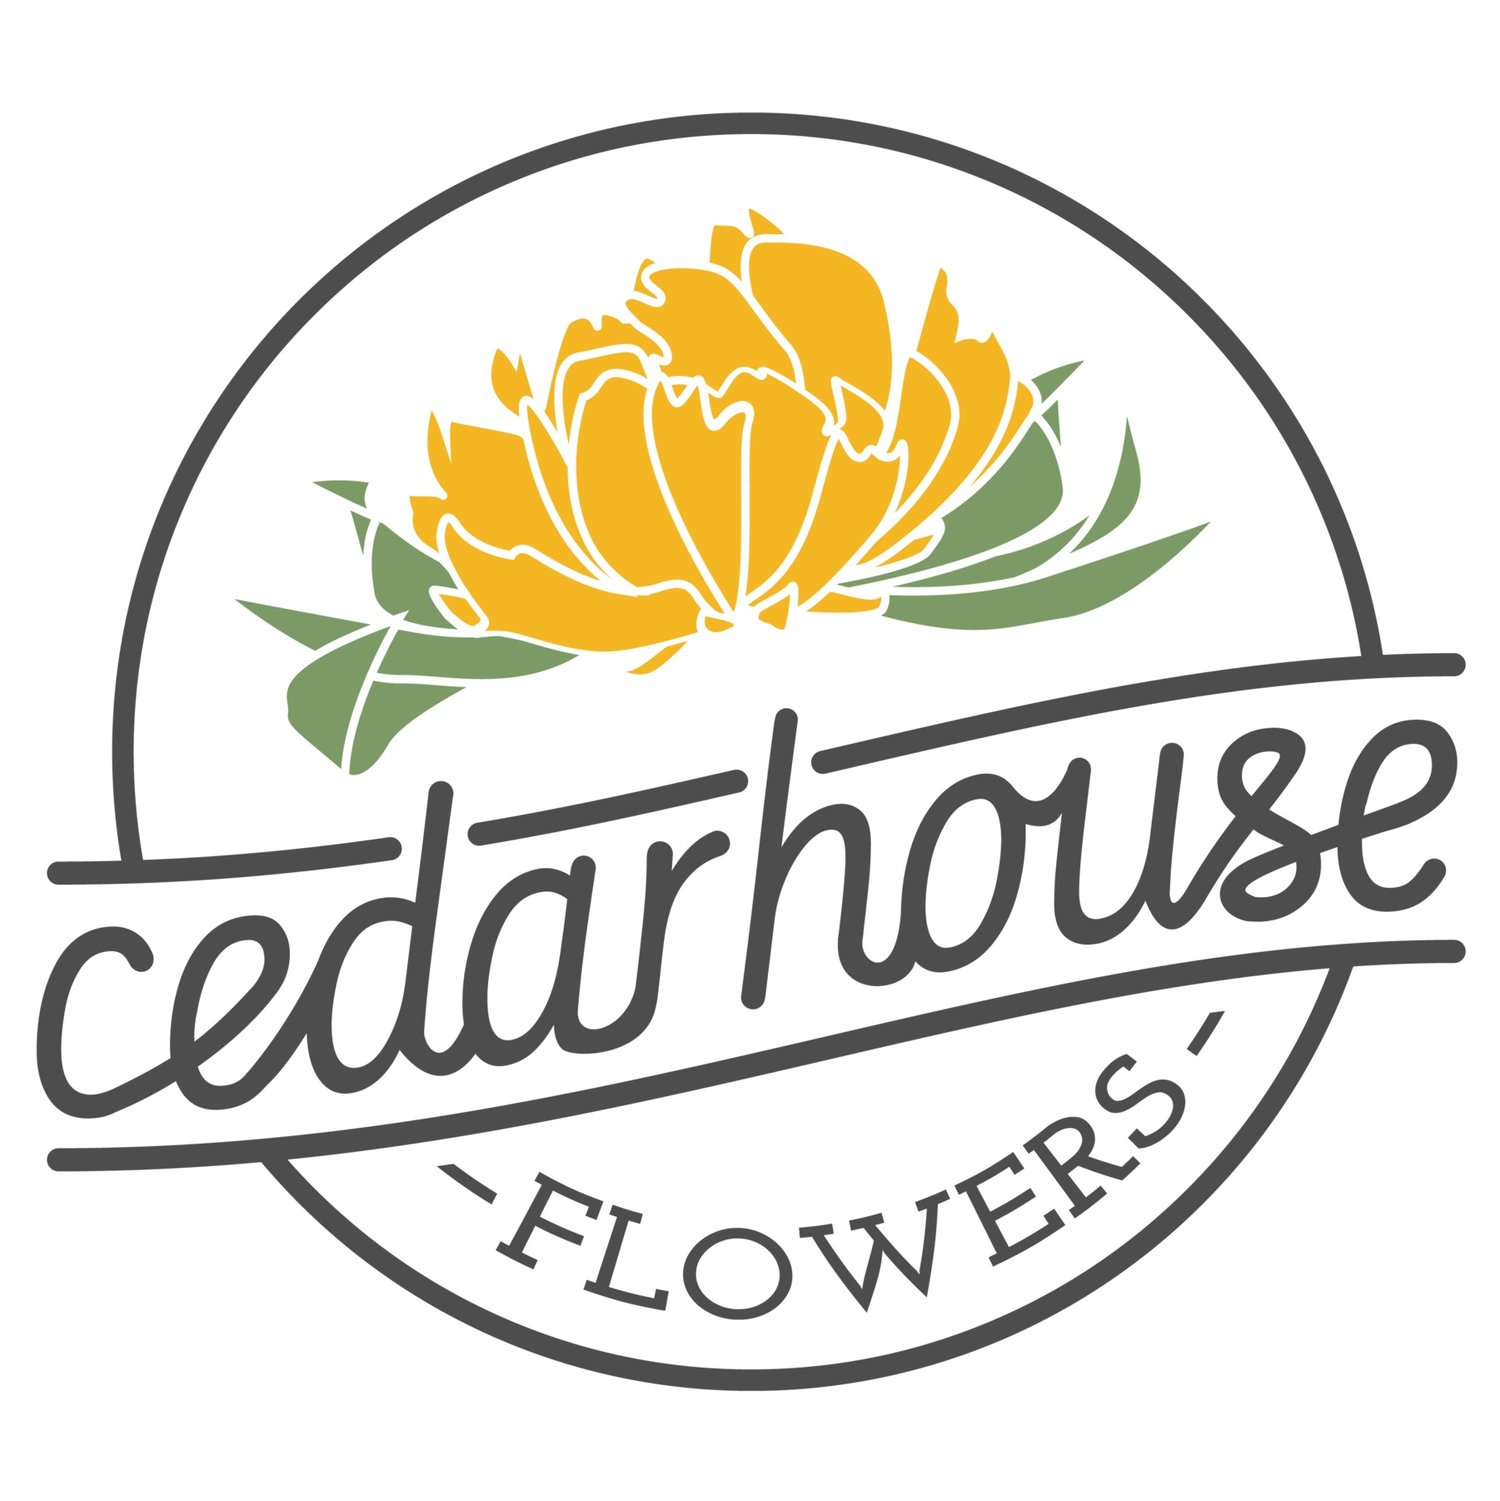 Seattle Florist | Flower Delivery by Cedarhouse Flowers